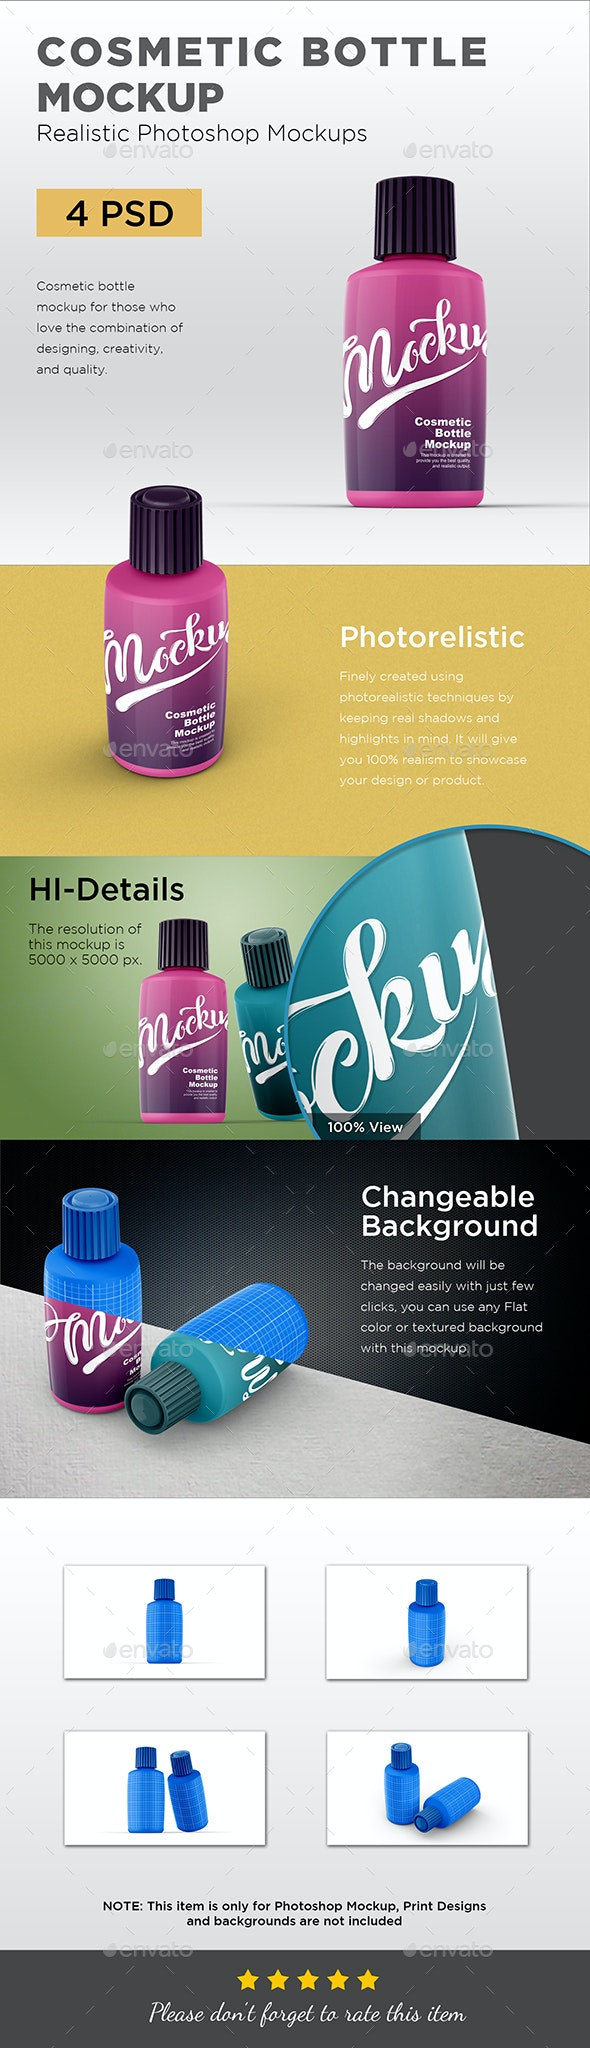 Cosmetic Bottle Mockup - Packaging Product Mock-Ups